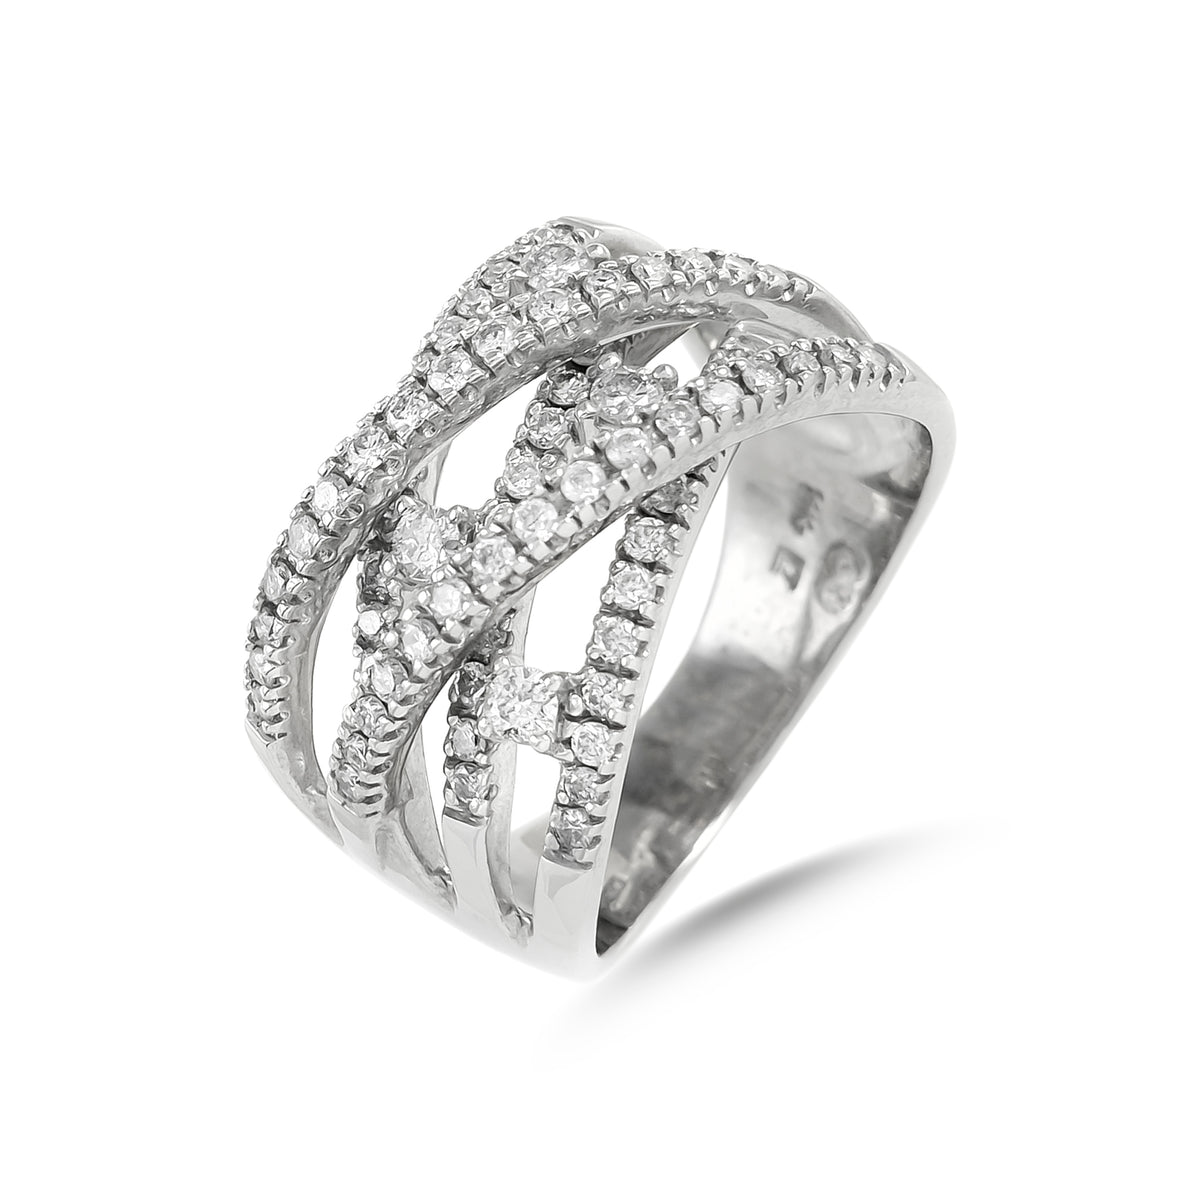 Vintage 14ct White Gold Five Row Diamond Crossover Ring